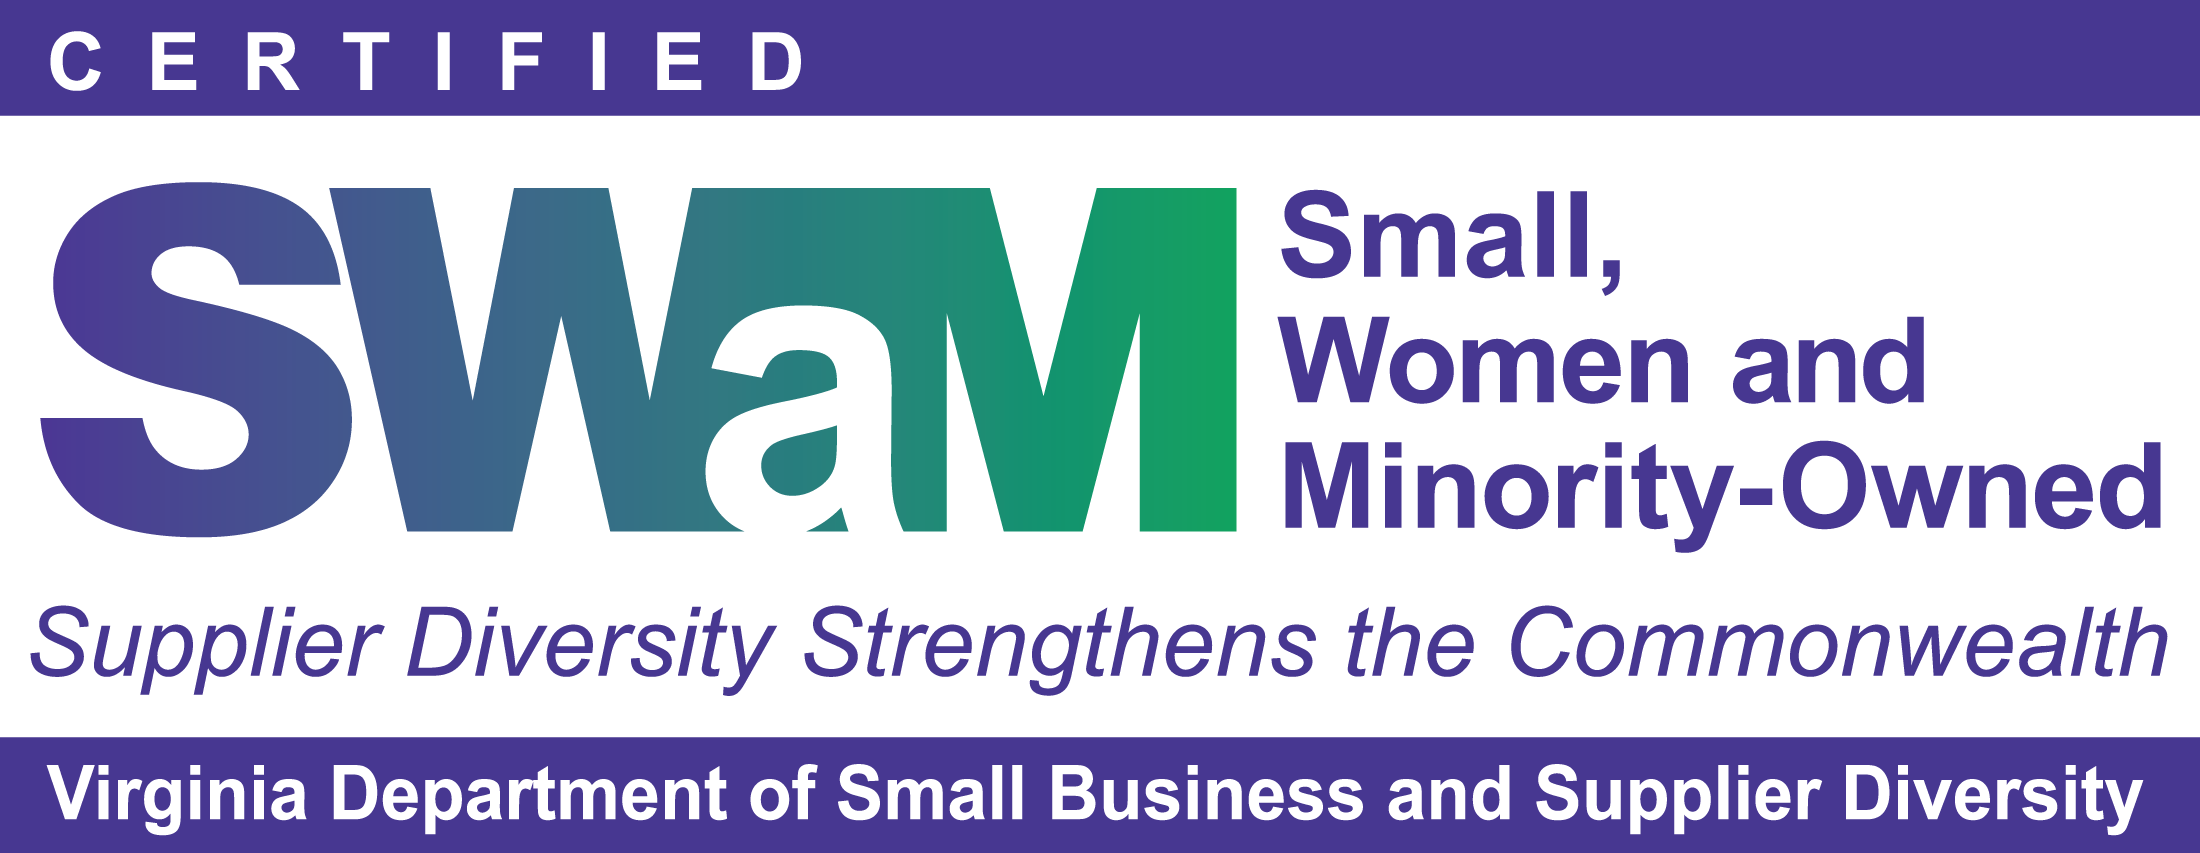 Small Women and Minority Owned Certification. Virginia Department of Small Business and Supplier Diversity. Supplier Diversity Strengthens the Commonwealth